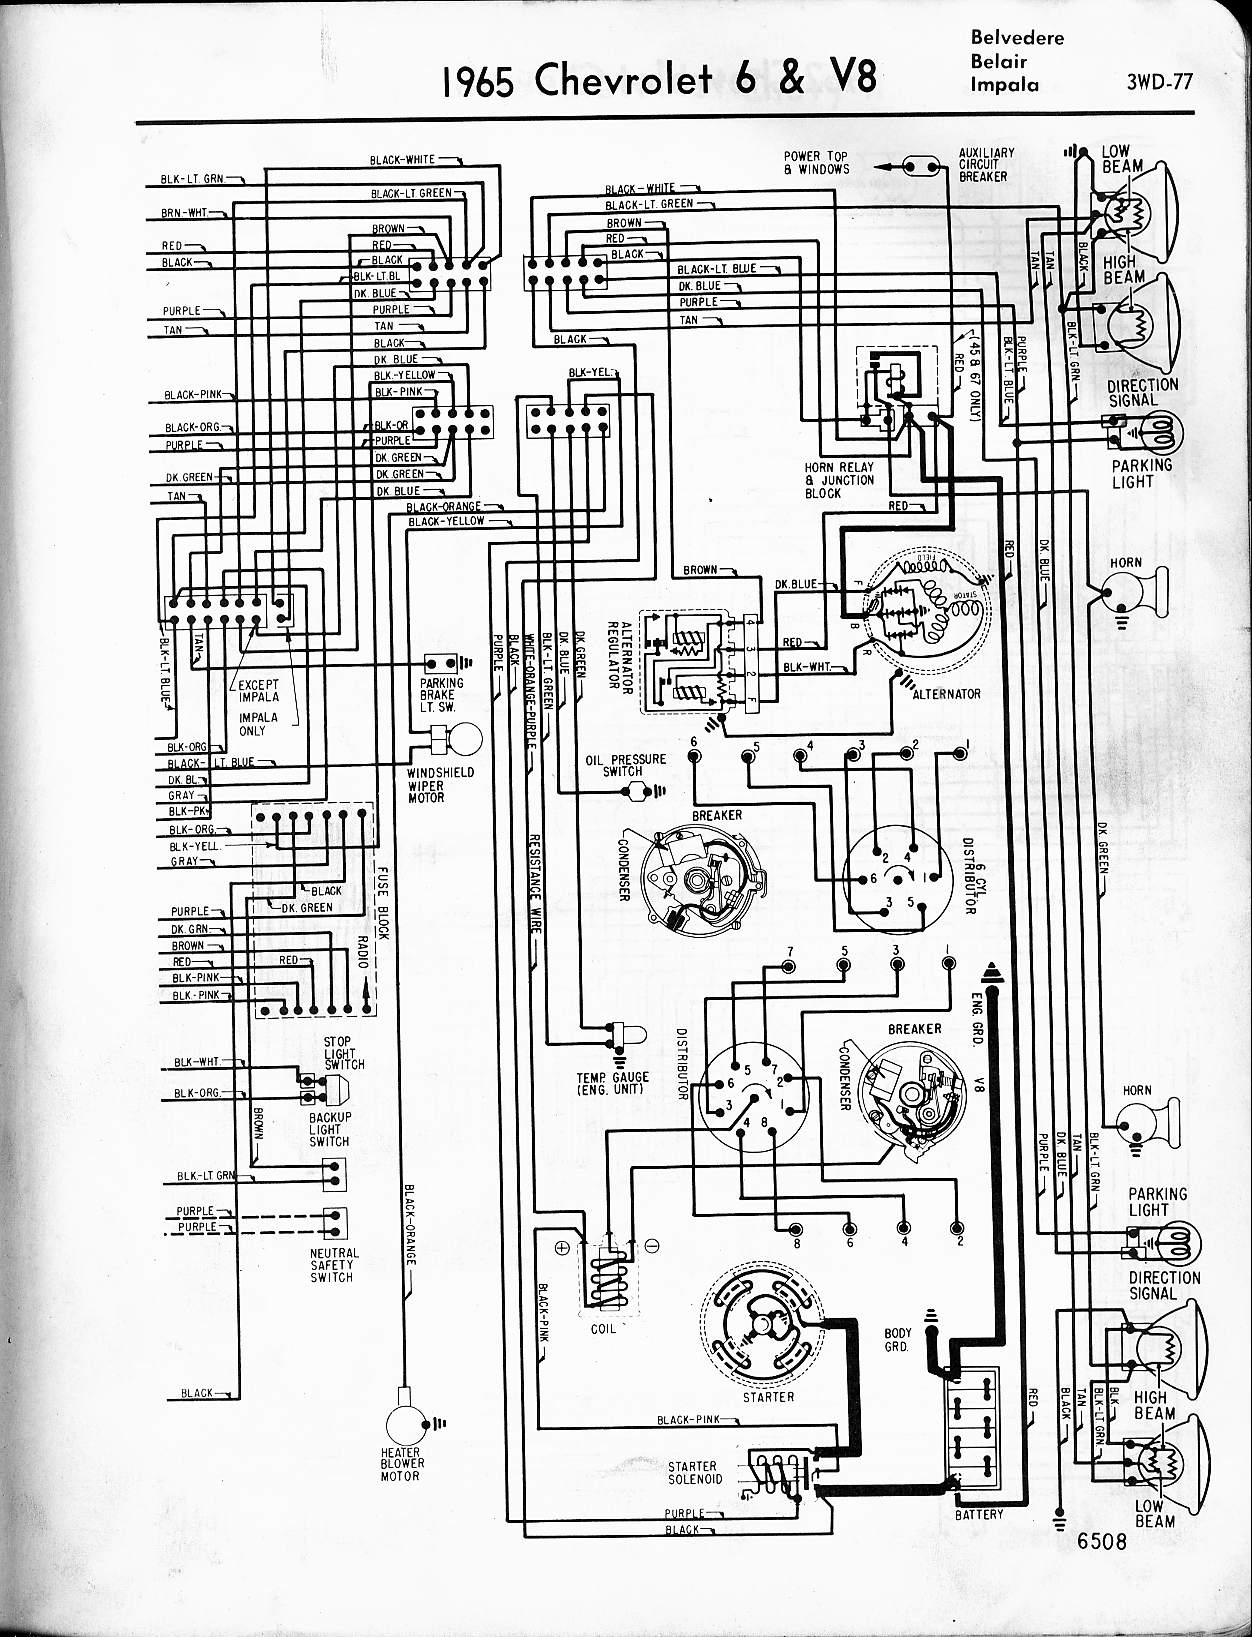 MWireChev65_3WD 077 chevy diagrams 1965 chevy truck turn signal wiring diagram at gsmportal.co